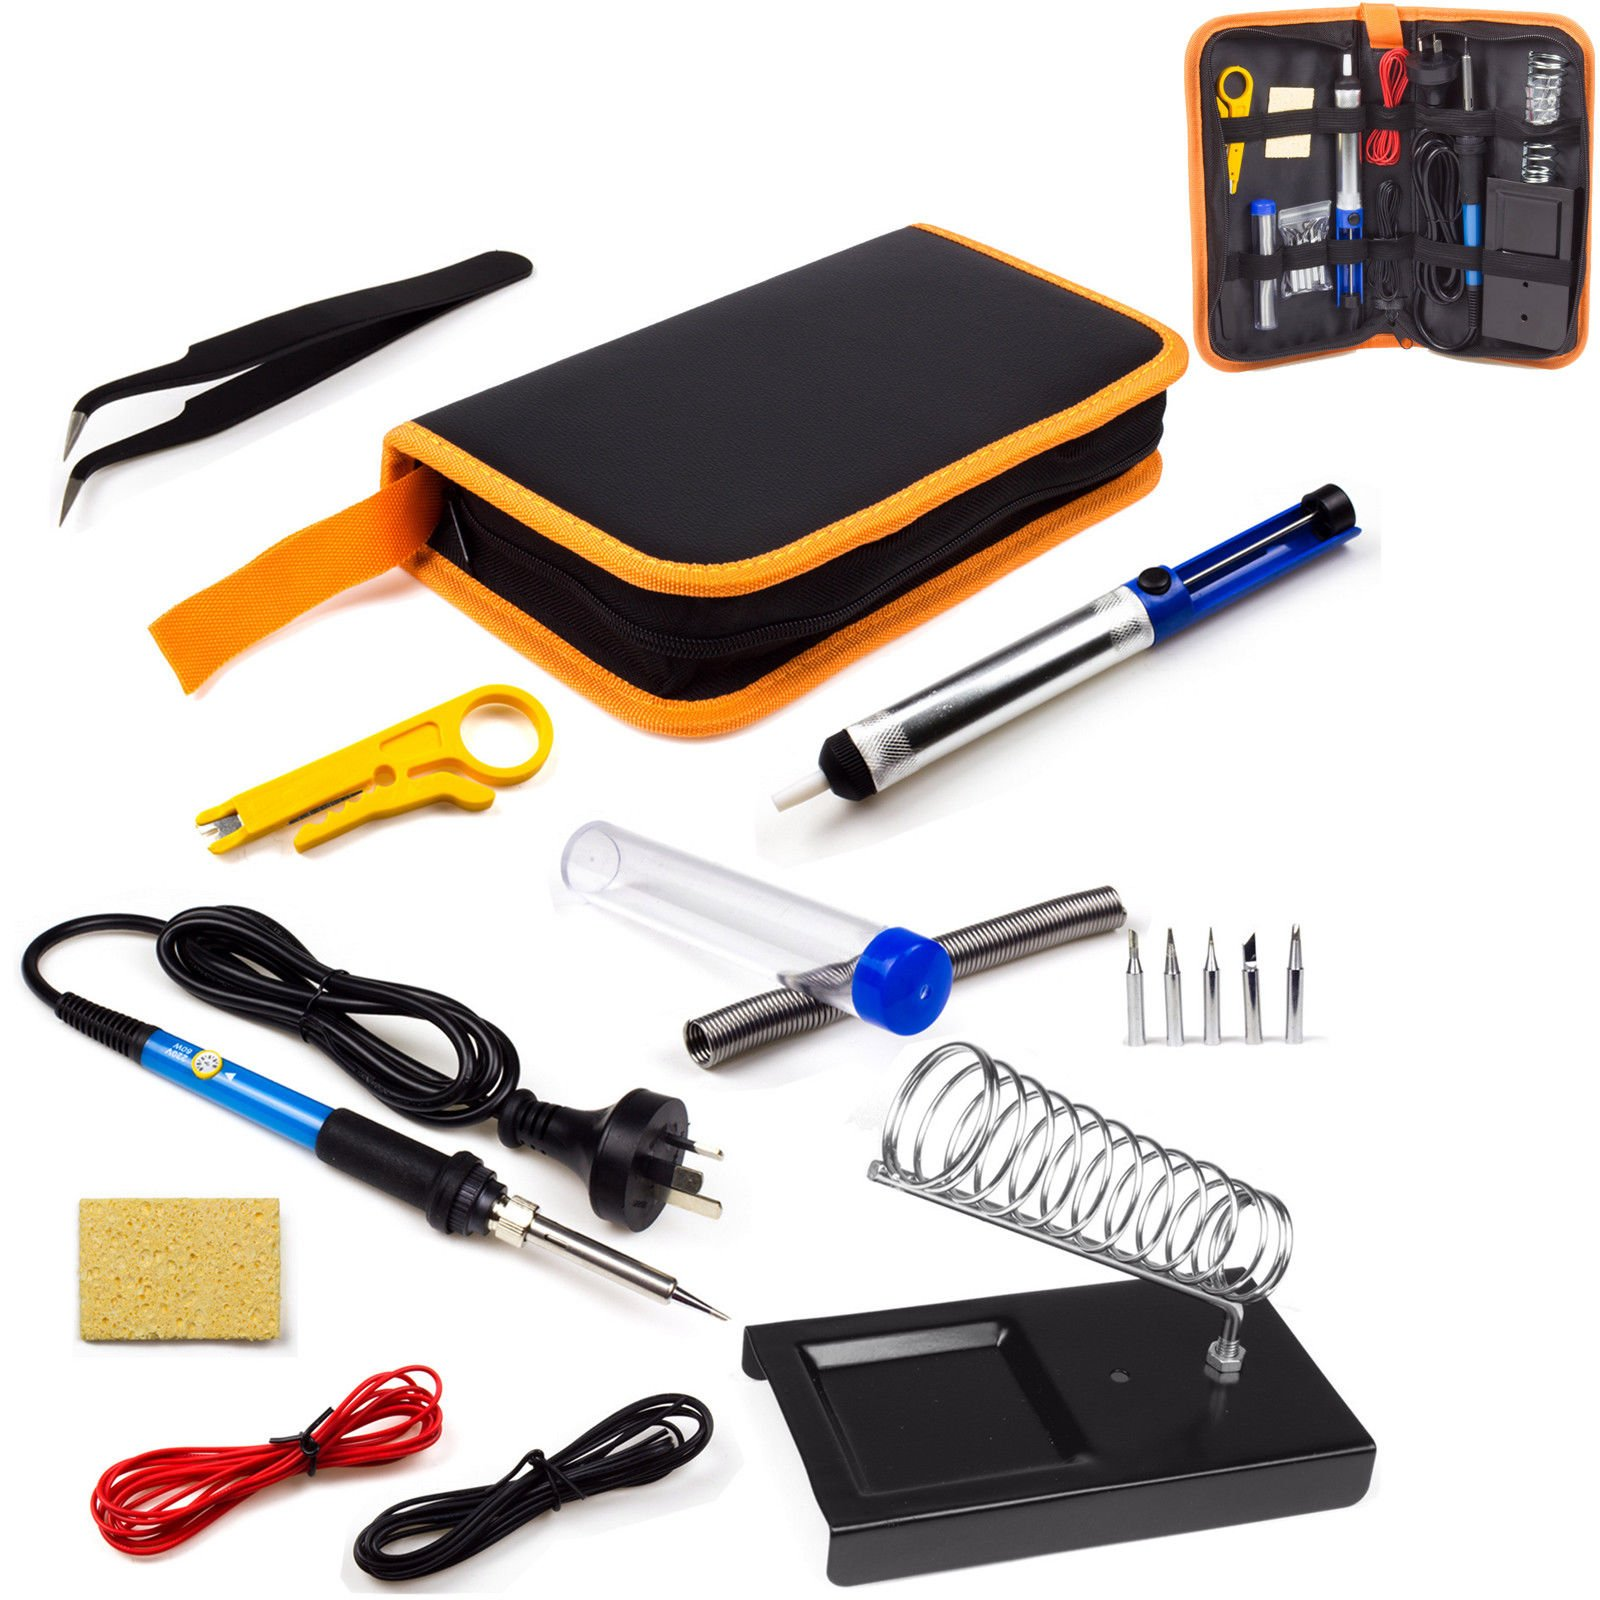 Ziss Electric Soldering Iron Kit with On/Off Switch 60W 110V Adjustable Temperature 10 in 1 Welding Suit